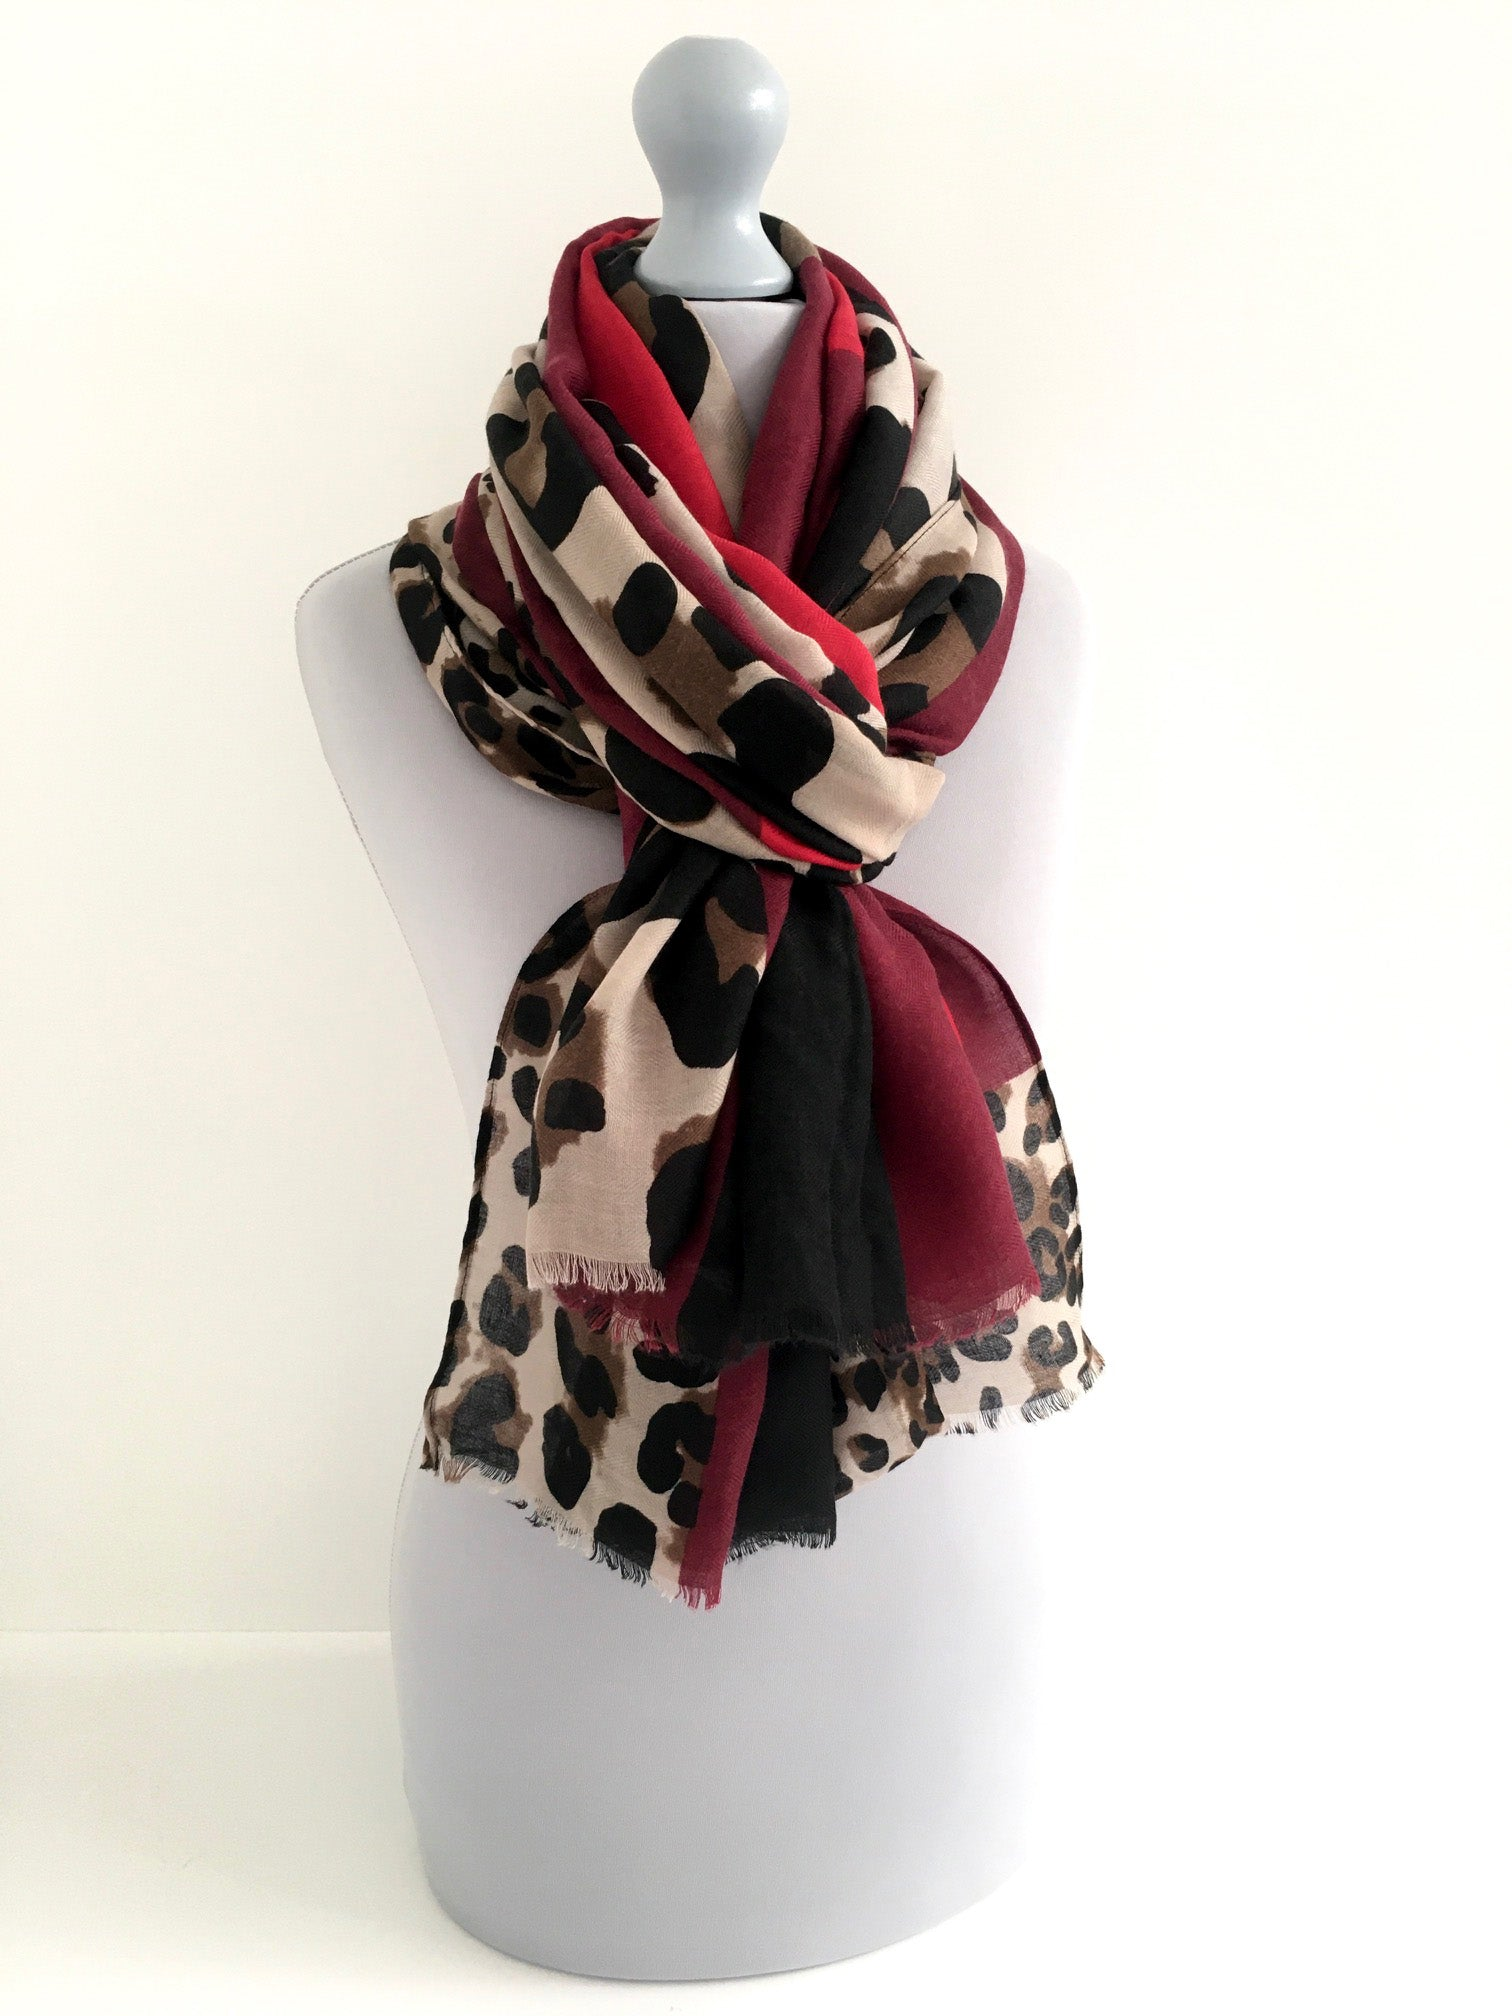 A-SHU LARGE BURGUNDY BLOCK PRINT LEOPARD PRINT SHAWL SCARF - A-SHU.CO.UK